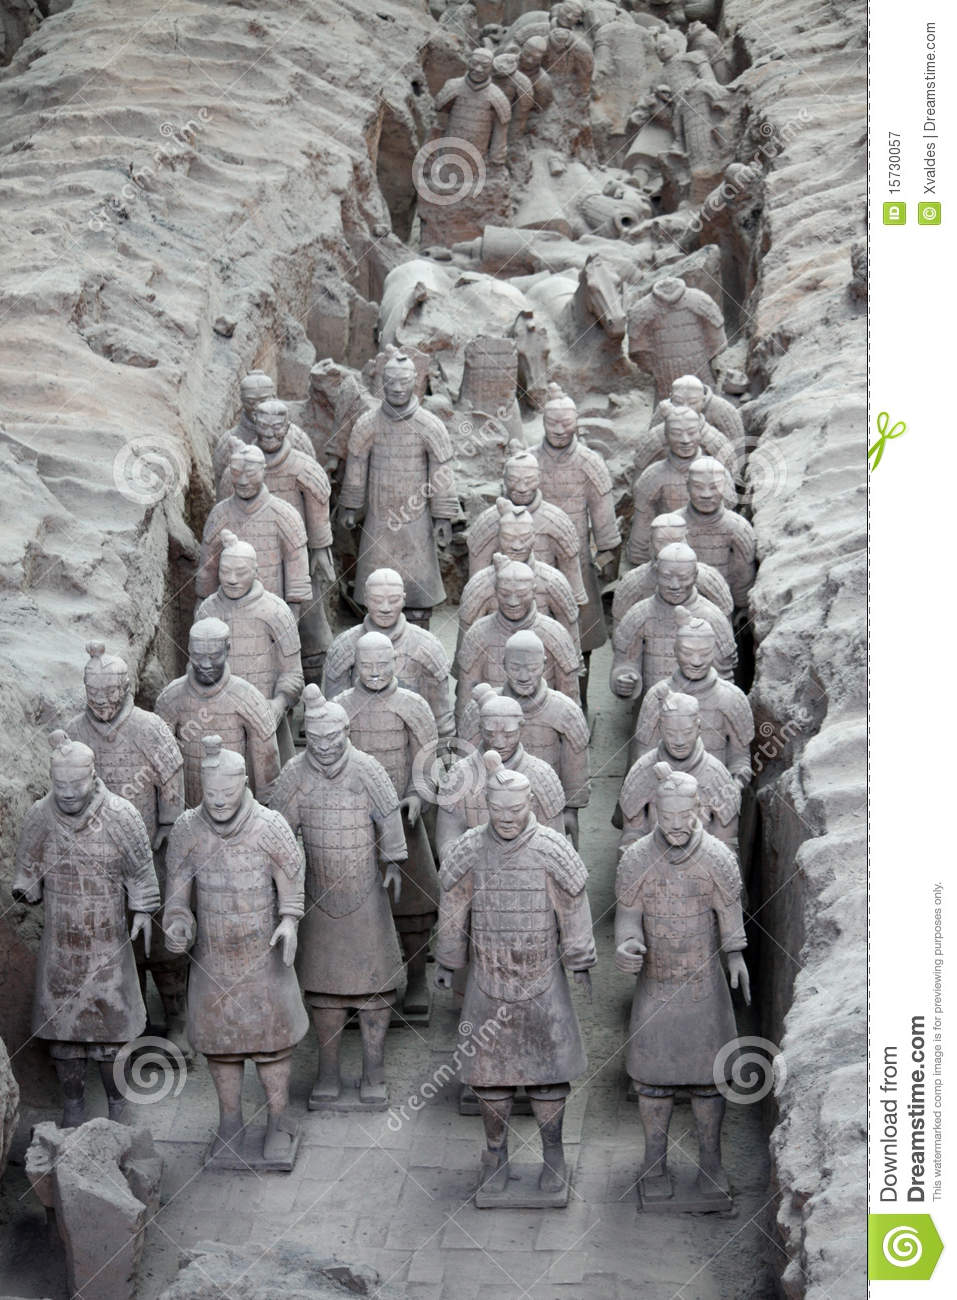 Guerreros de la terracota, China